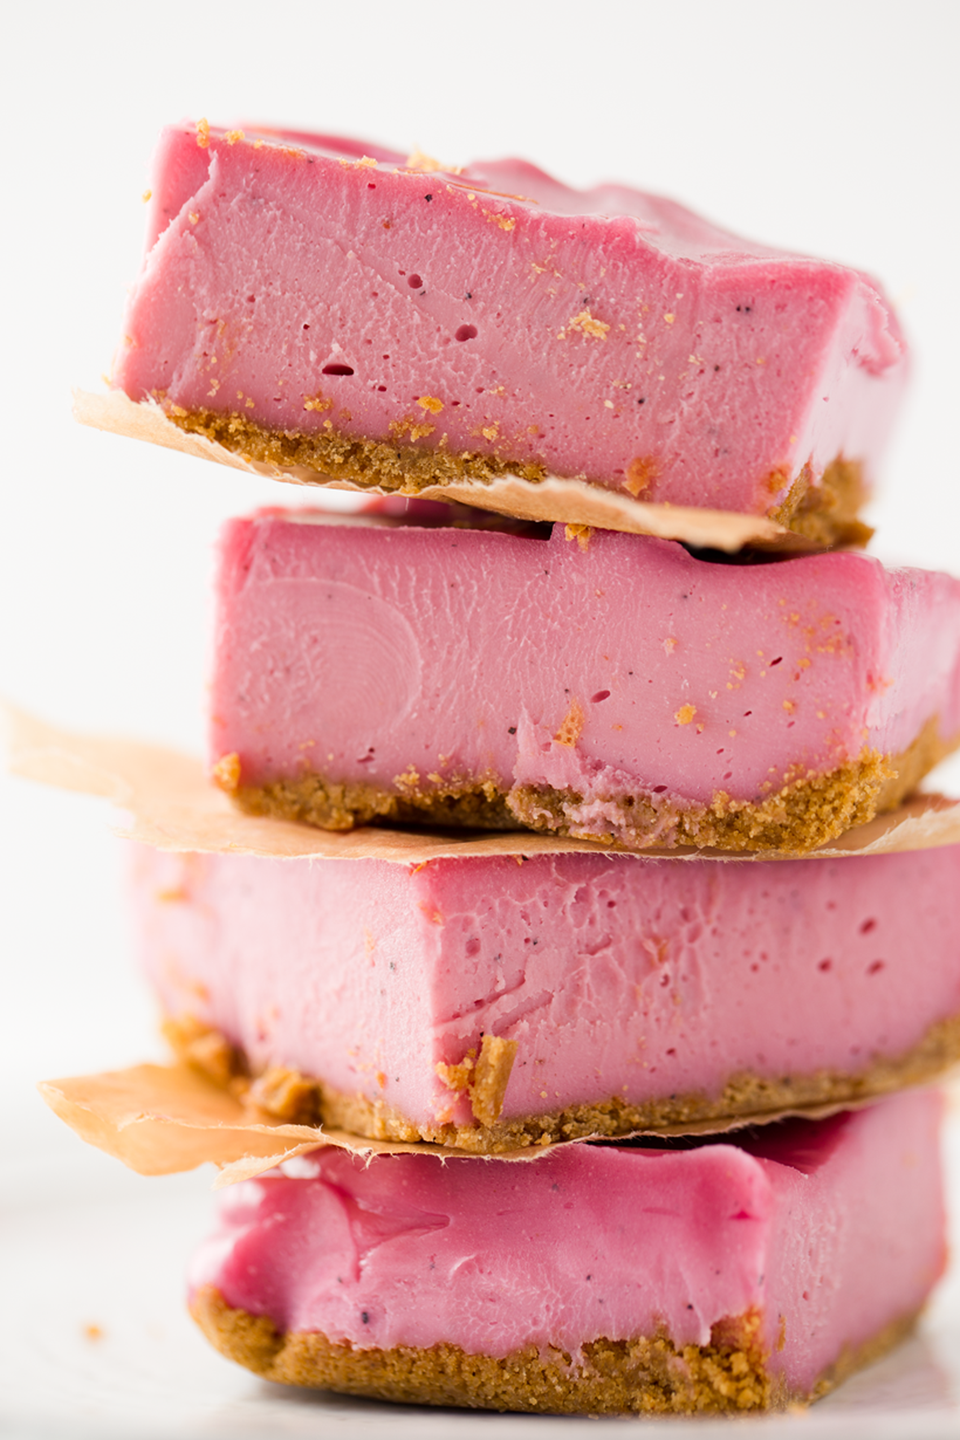 "<p>For a healthy Mother's Day dessert that's still delicious, try these vegan ""cheesecake"" bars that are made with cashews instead of cream cheese.</p><p><strong>Get the recipe at <a href=""http://kblog.lunchboxbunch.com/2016/06/vegan-pink-cheesecake-bars.html"" rel=""nofollow noopener"" target=""_blank"" data-ylk=""slk:Healthy. Happy. Life"" class=""link rapid-noclick-resp"">Healthy. Happy. Life</a>.</strong></p><p><a class=""link rapid-noclick-resp"" href=""https://www.amazon.com/Hamilton-Beach-70725A-FBA_70725-Processor/dp/B00KHLN7K2?tag=syn-yahoo-20&ascsubtag=%5Bartid%7C10050.g.4238%5Bsrc%7Cyahoo-us"" rel=""nofollow noopener"" target=""_blank"" data-ylk=""slk:SHOP FOOD PROCESSORS"">SHOP FOOD PROCESSORS</a> </p>"